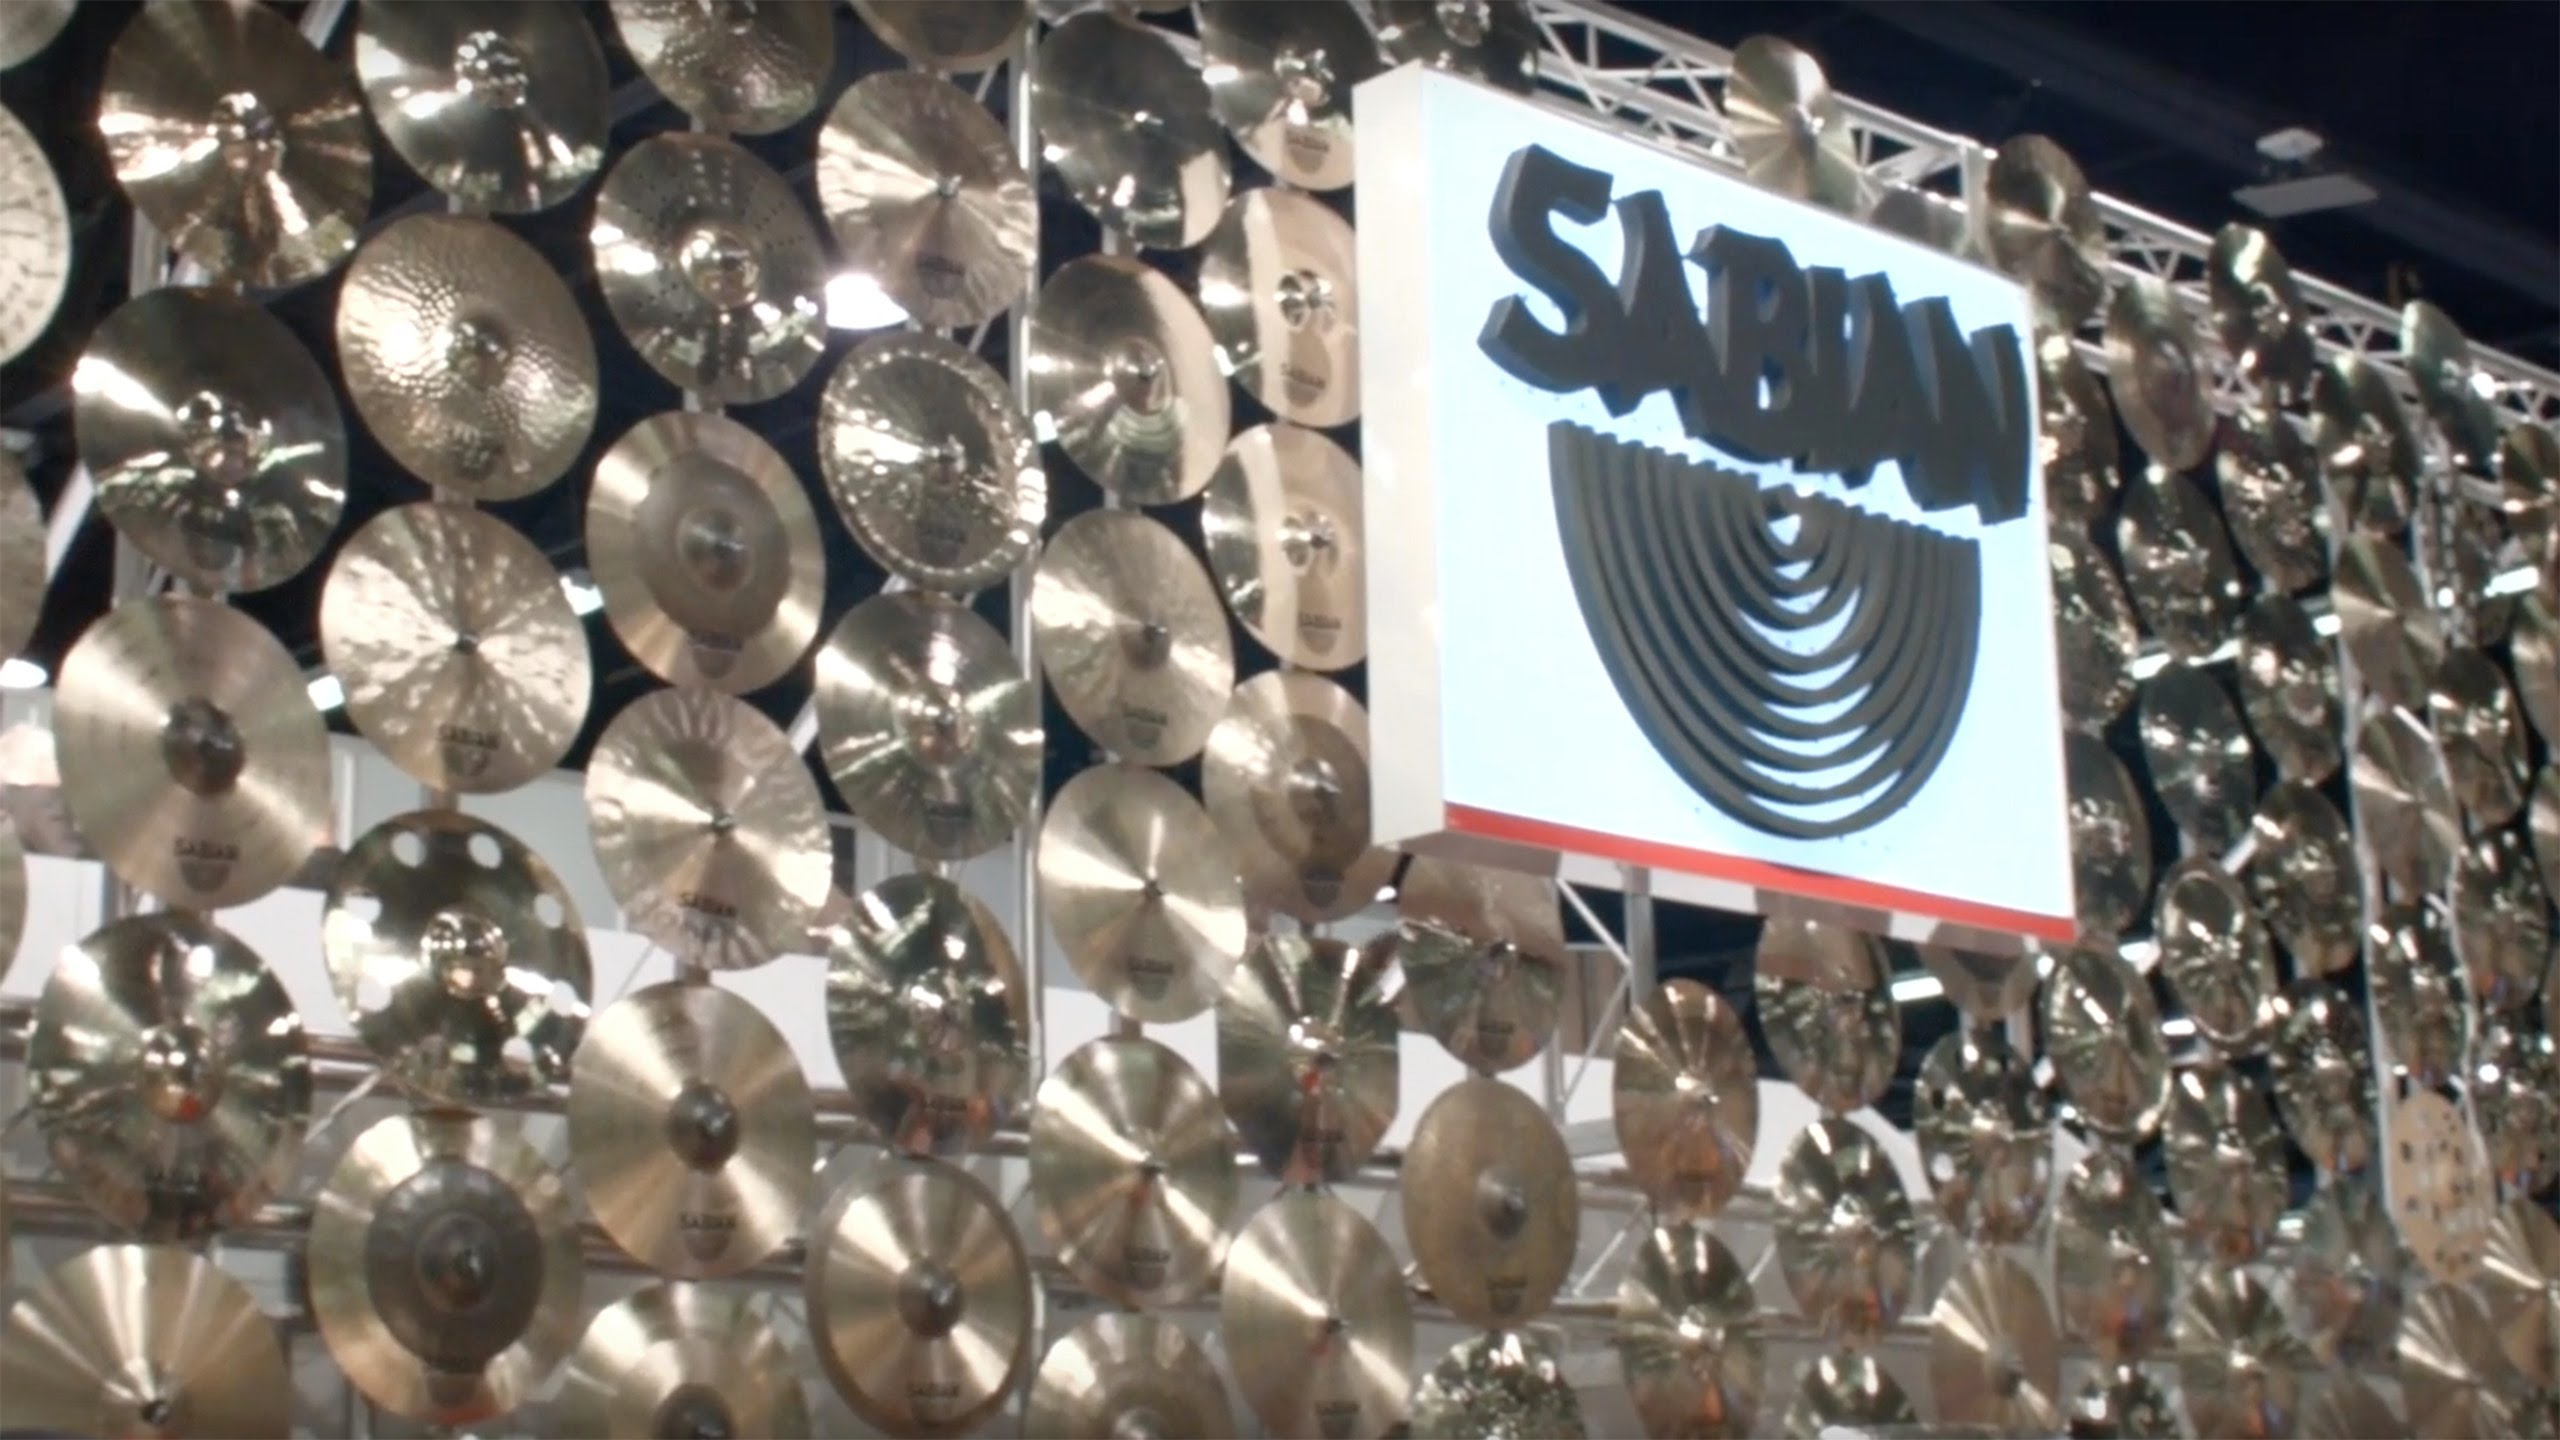 SHOW YOUR SABIAN